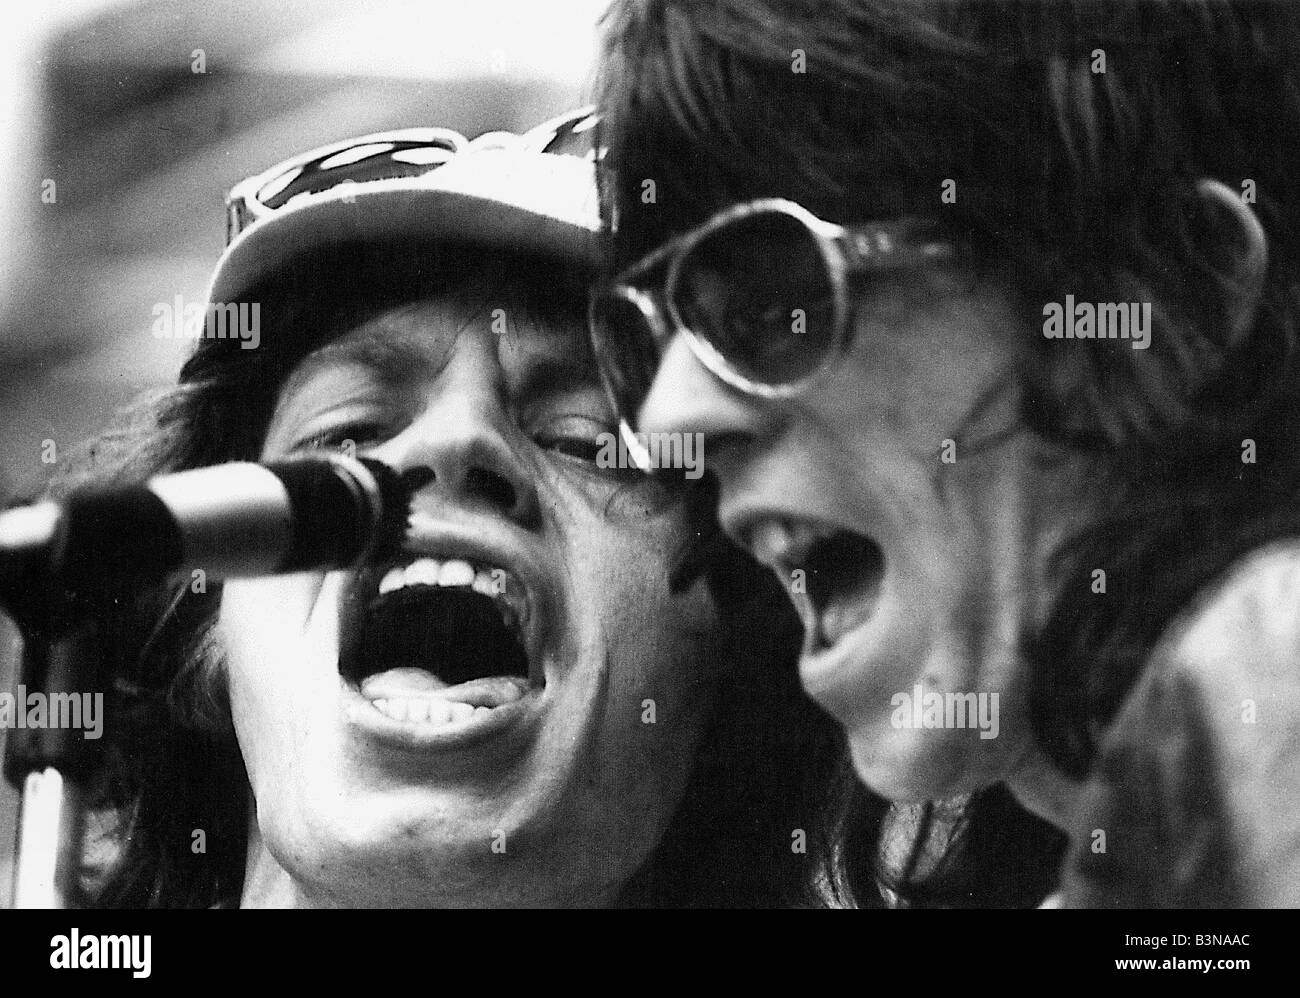 ROLLING STONES Mick Jagger et Keith Richards sur 1980 Photo Stock